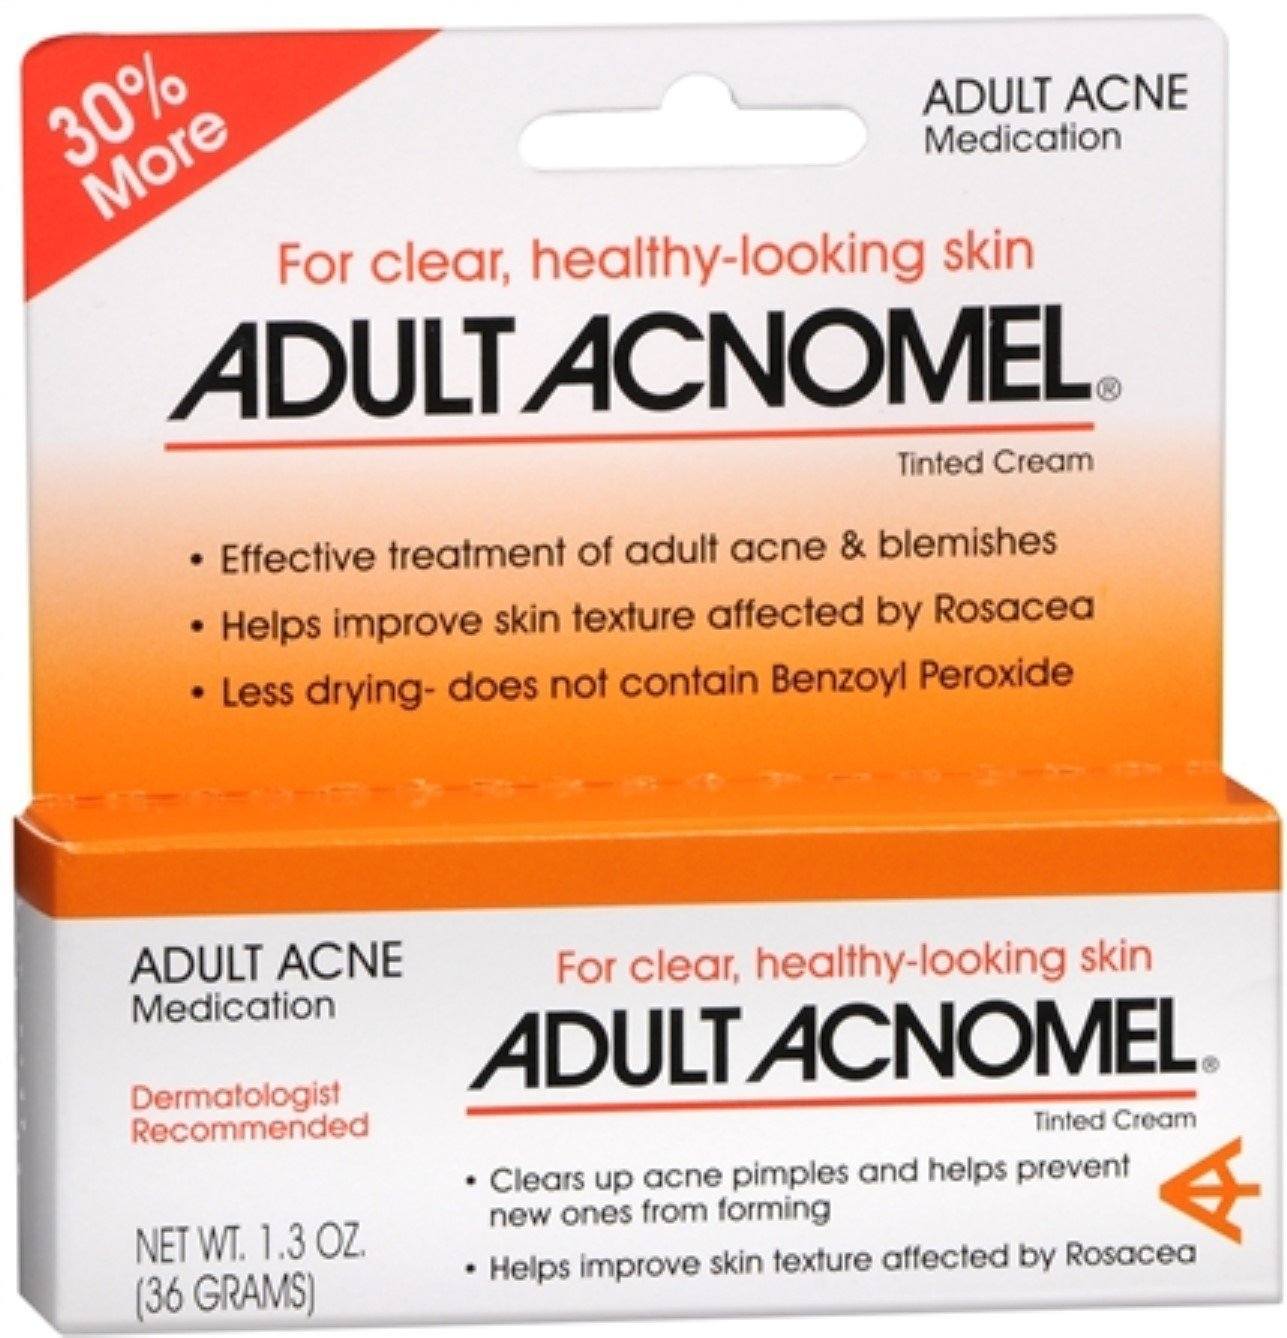 Adult Acnomel Tinted Cream 1.30 oz (Pack of 8)